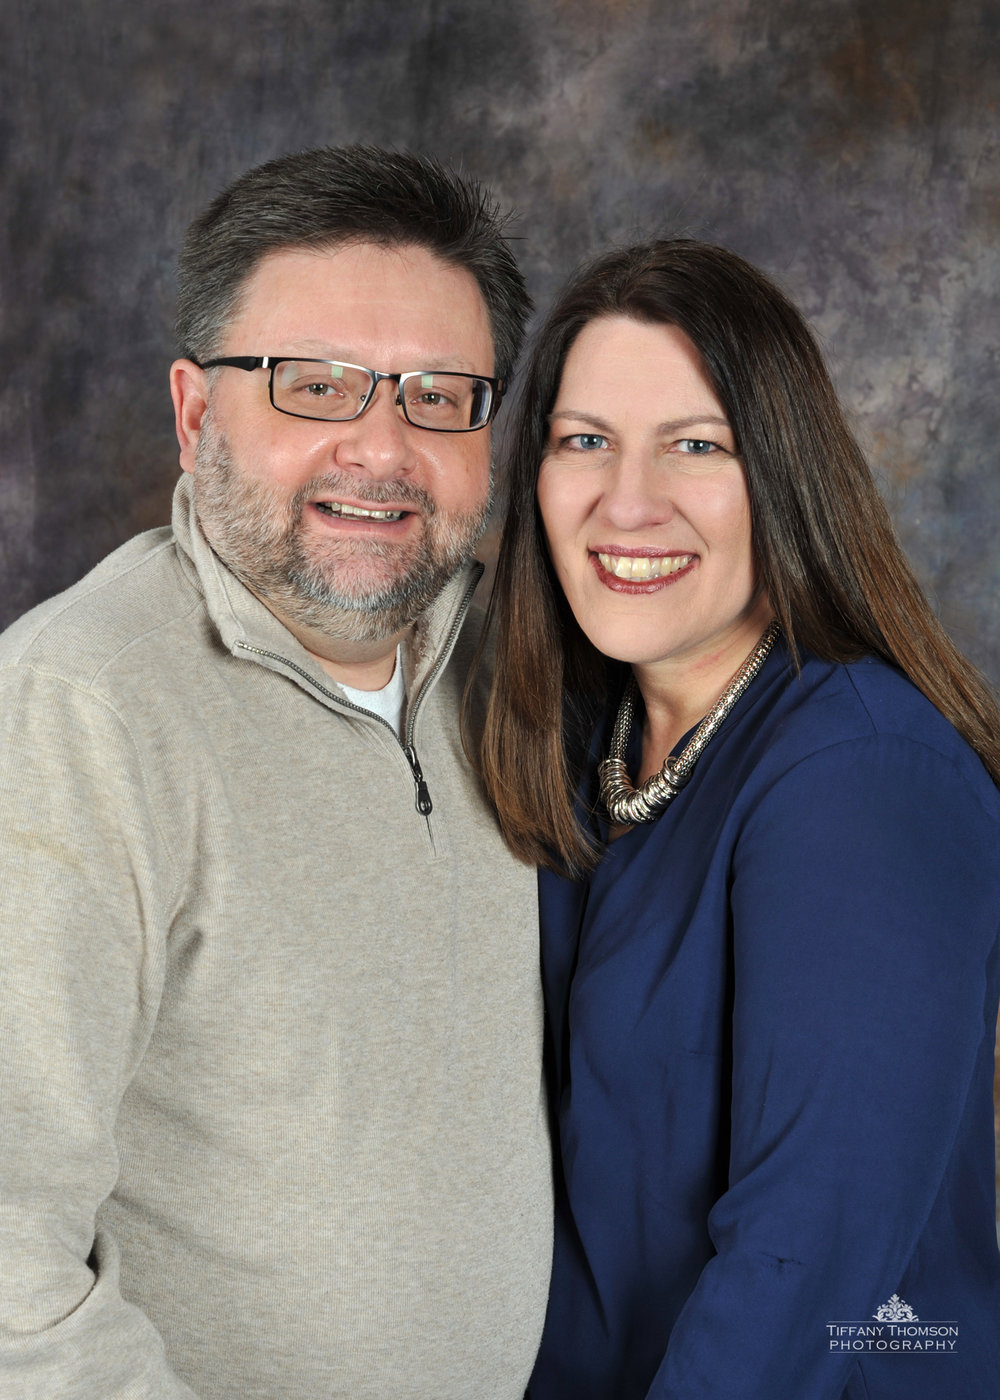 OUR PASTORS - Pastors Earl and Jennifer Rice began their pastorate at New Beginnings Church in February 2015 after the wonderful founding pastors, JC and Jessie Neff answered God's call to take another church in Indiana. Pastors Earl and Jennifer are excited for all that God has in store for New Beginnings and they seek God's plans and purposes for the Body of Christ. They desire to see people get saved, their lives transformed, and to lead and guide the Body of Christ to fulfill God's call on their lives. Their call on New Beginnings and their ministry is to build churches in communities around the Effingham area in addition to building the church in Effingham.Pastor Earl Rice is a 1993 graduate of Rhema Bible Training Center in Broken Arrow, OK. Pastor Jennifer Rice left a secular corporate career in October 2017 to join the ministry full-time. She writes a blog and works as the Administrator for New Beginnings. She is also taking correspondence courses through Rhema Bible Correspondence School.They have two grown daughters (Pastor Jennifer's), Lakin and Mackenzie. Lakin is married to Tyler and they blessed Pastors with two grandsons, Nolan Tate and Warren Cole, who bring so much fun and happiness to their lives! Lakin and family lives in Manchester IL. Mackenzie is a project manager and lives in Atlanta GA.Pastors Earl and Jennifer welcome you to New Beginnings Church and look forward to teaching, guiding, and loving you as you draw closer to and walk with the Lord.